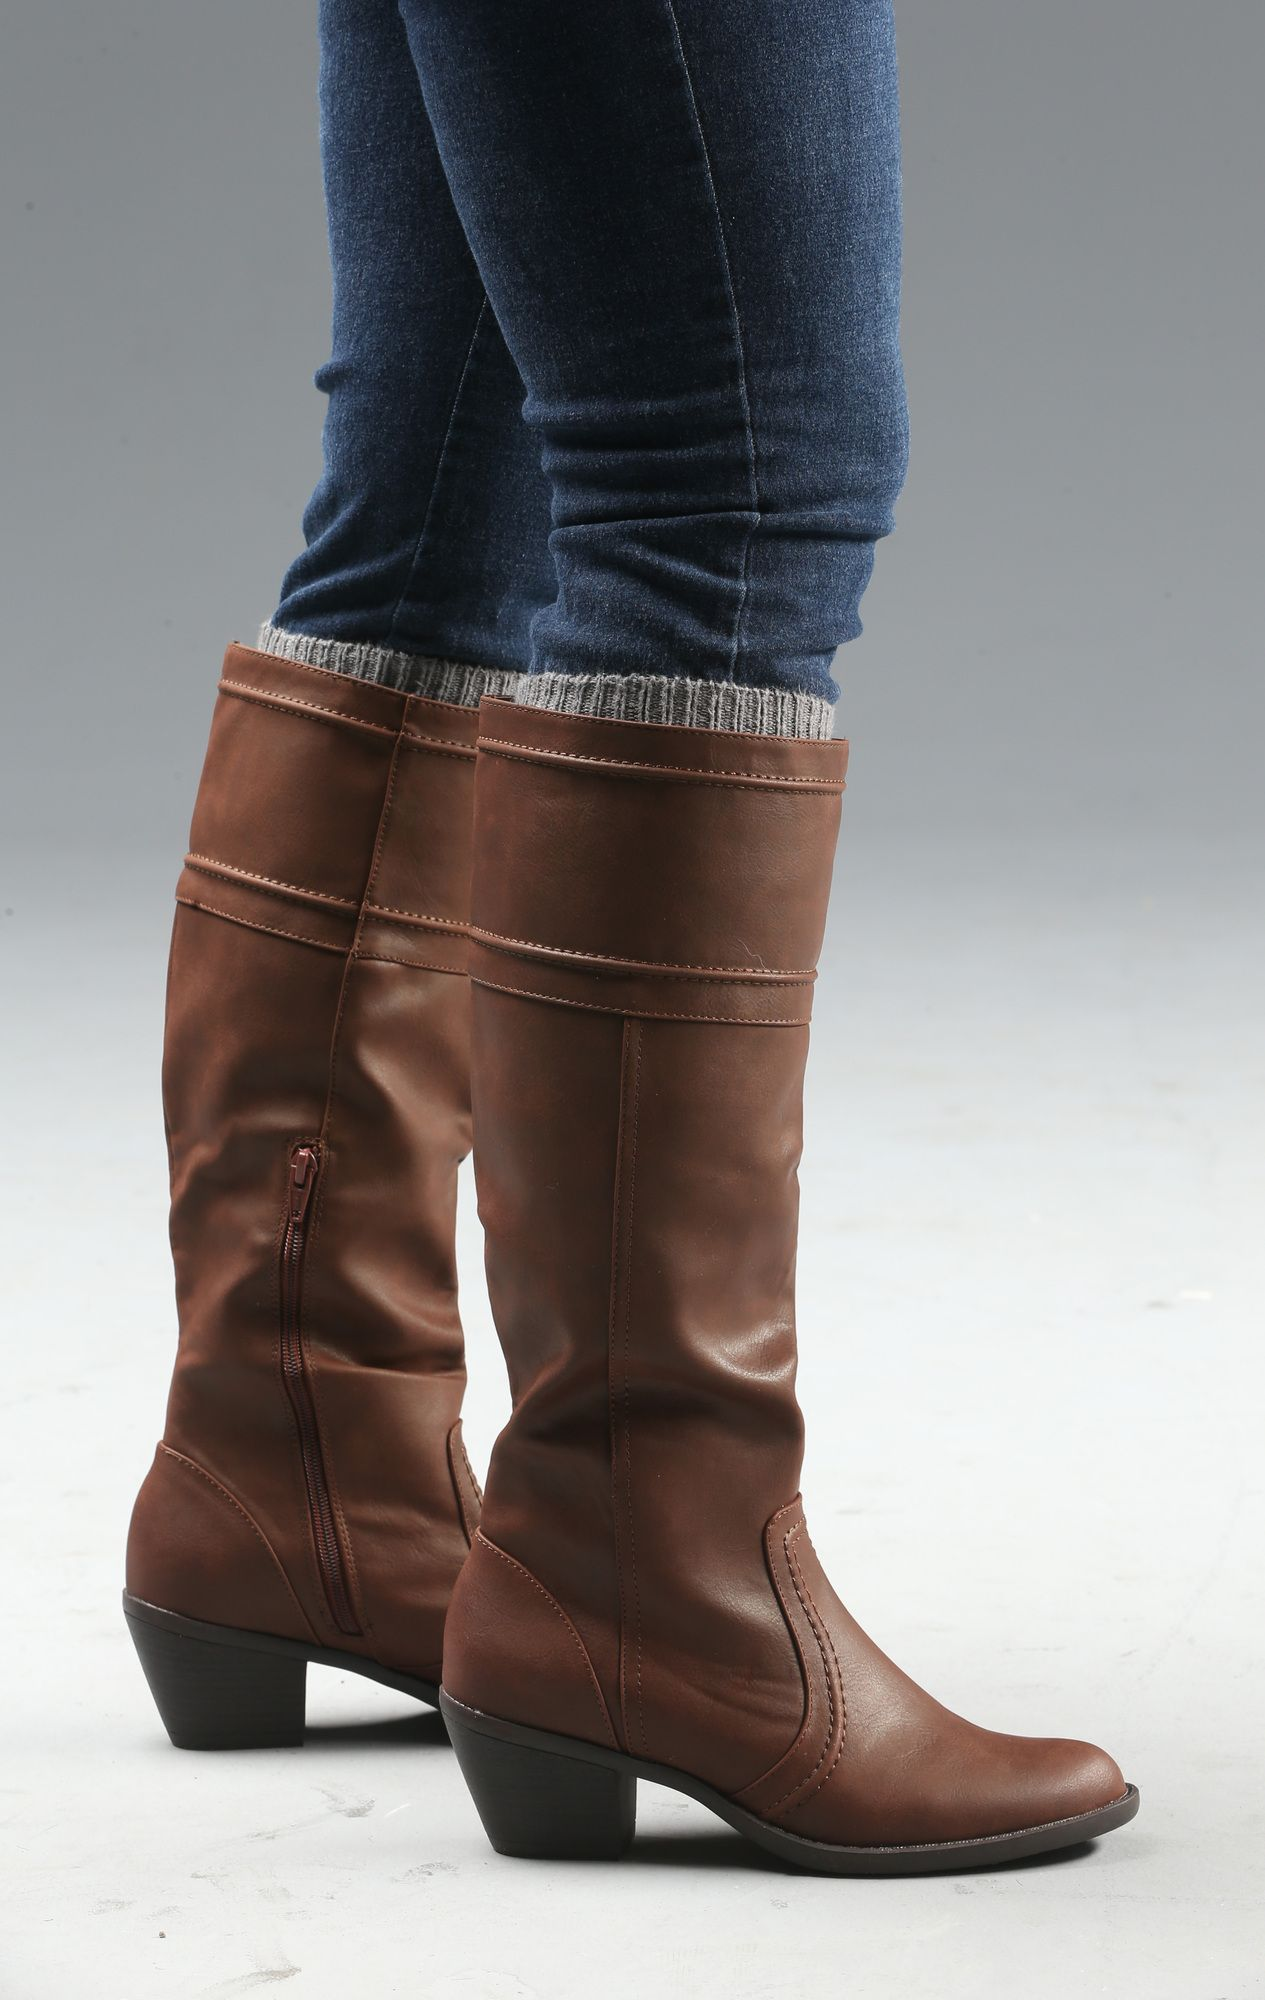 86e2d3e333d6 Tall boots  Short boots  Don t leave the house without picking an outfit  that flatters what s on your feet.